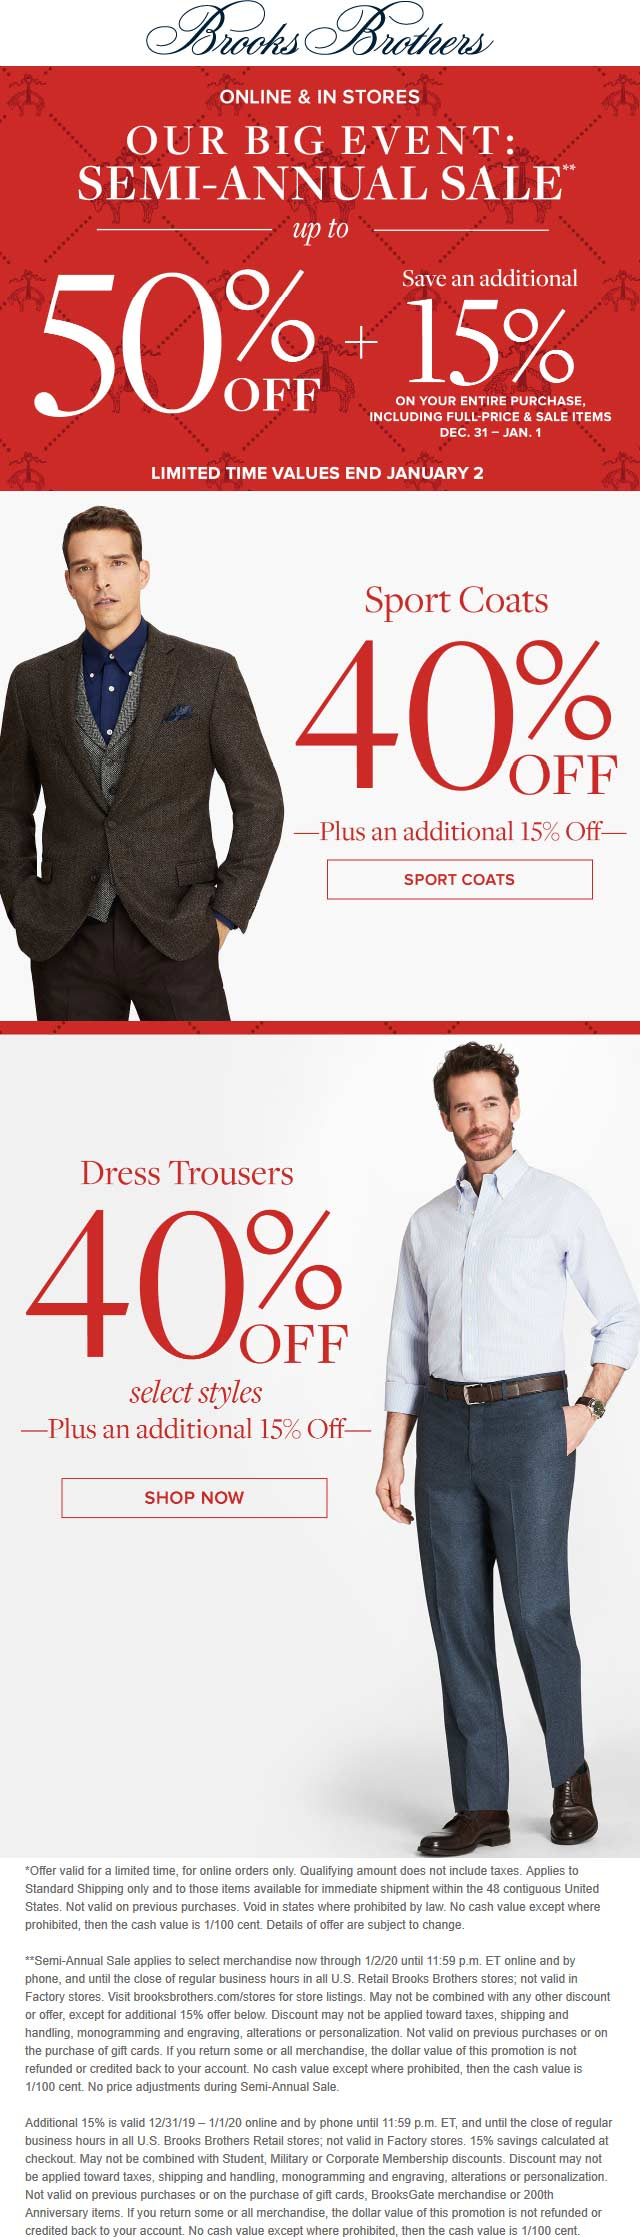 Brooks Brothers Coupon January 2020 Extra 15% off at Brooks Brothers, ditto online